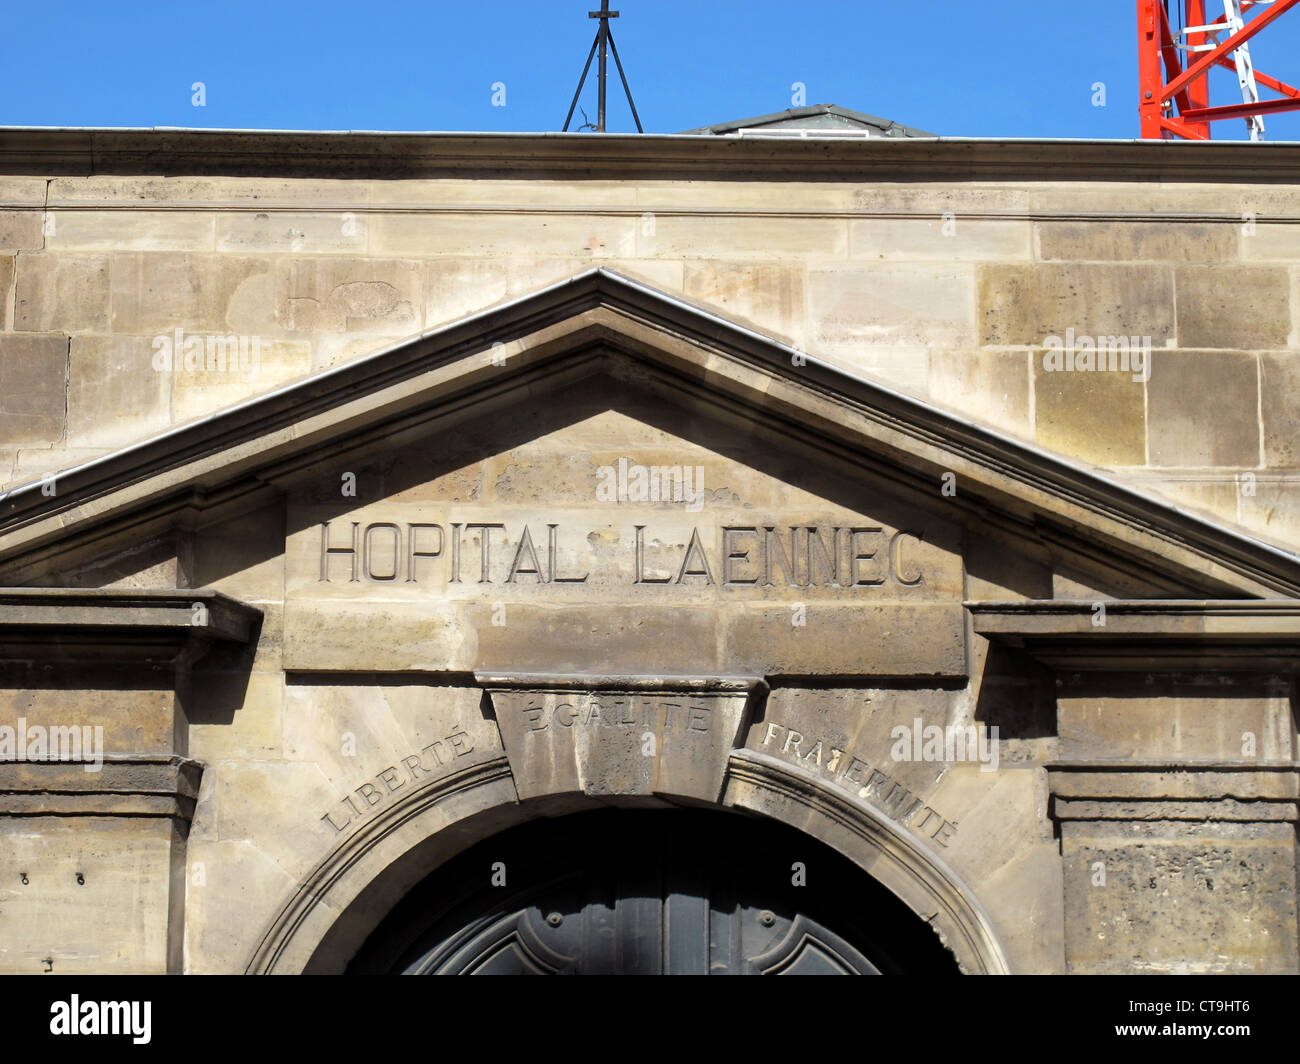 Laennec Stock Photos & Laennec Stock Images - Alamy - Hopital Laennec